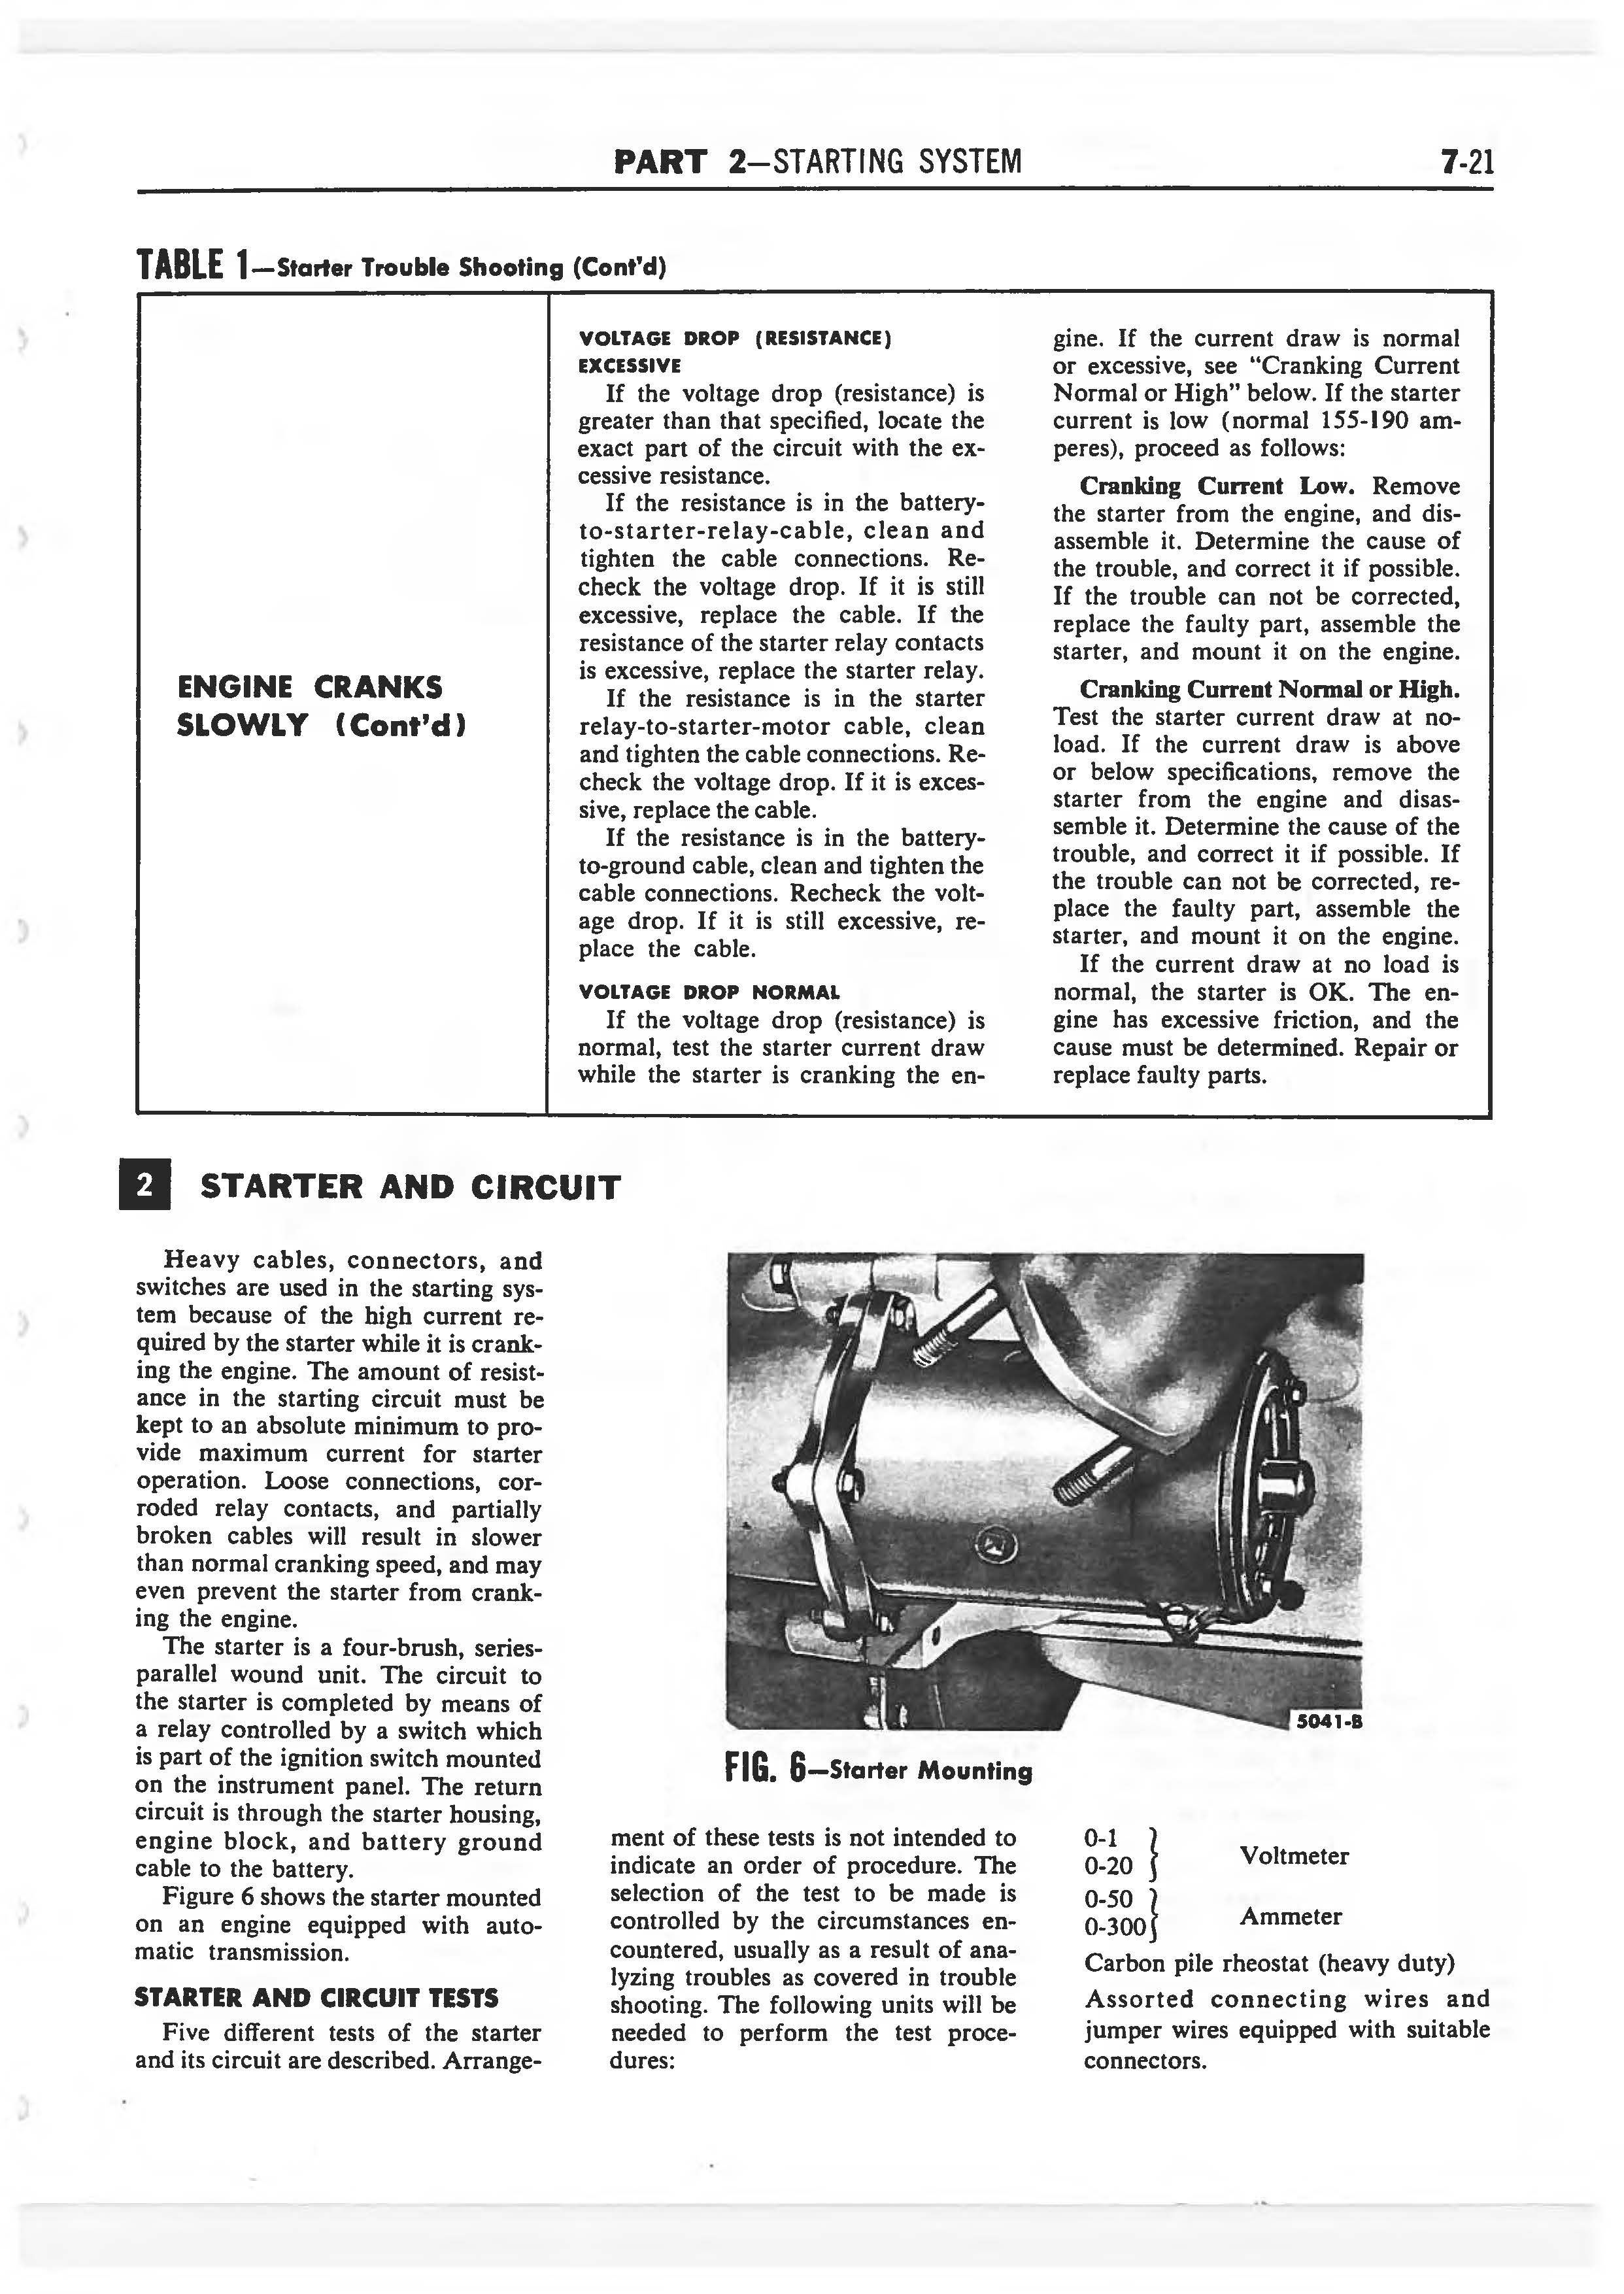 1958 Ford Thunderbird Shop Manual page 259 of 360